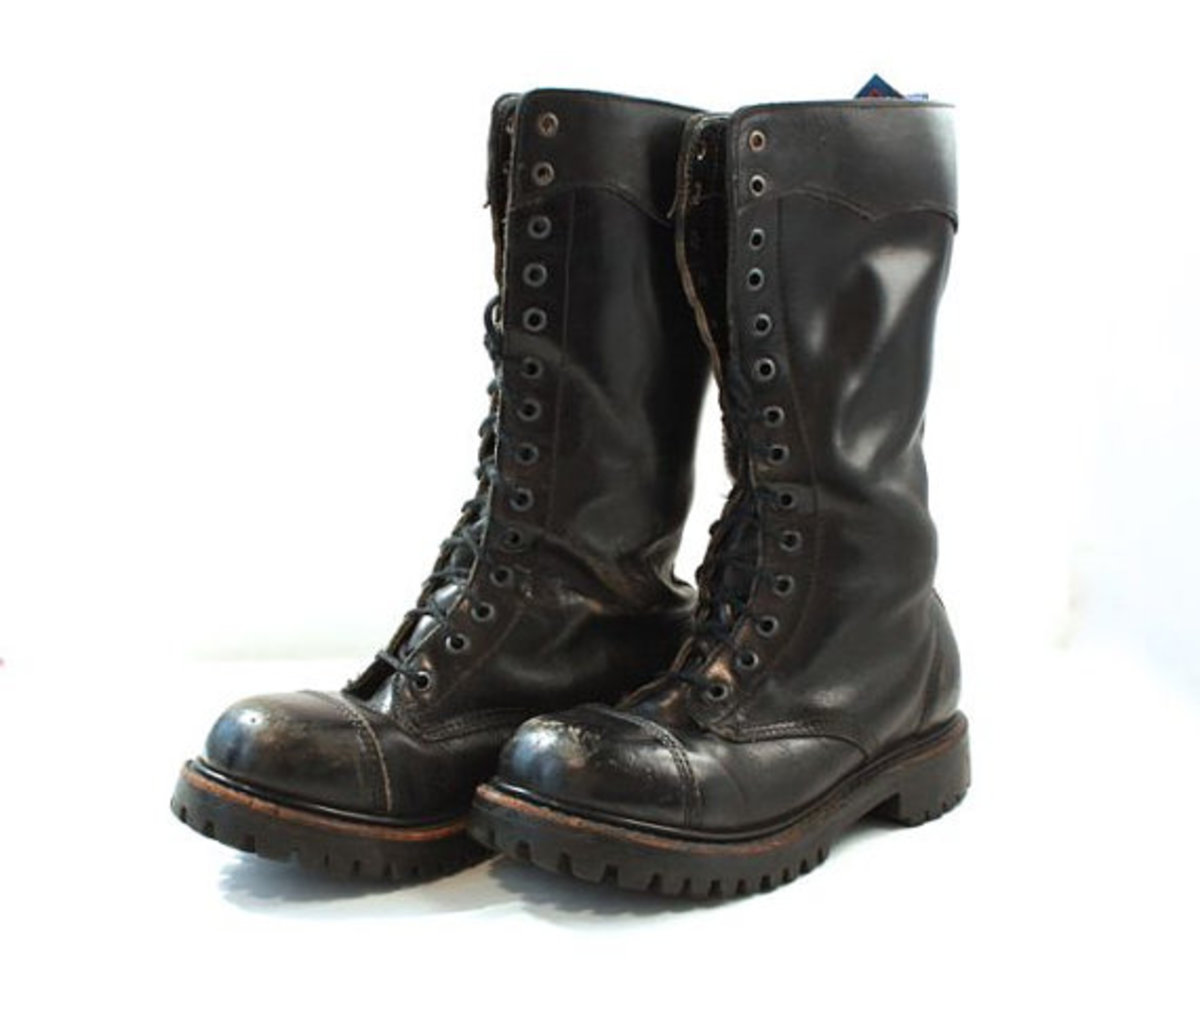 80s Punk Fashion: Combat Boots